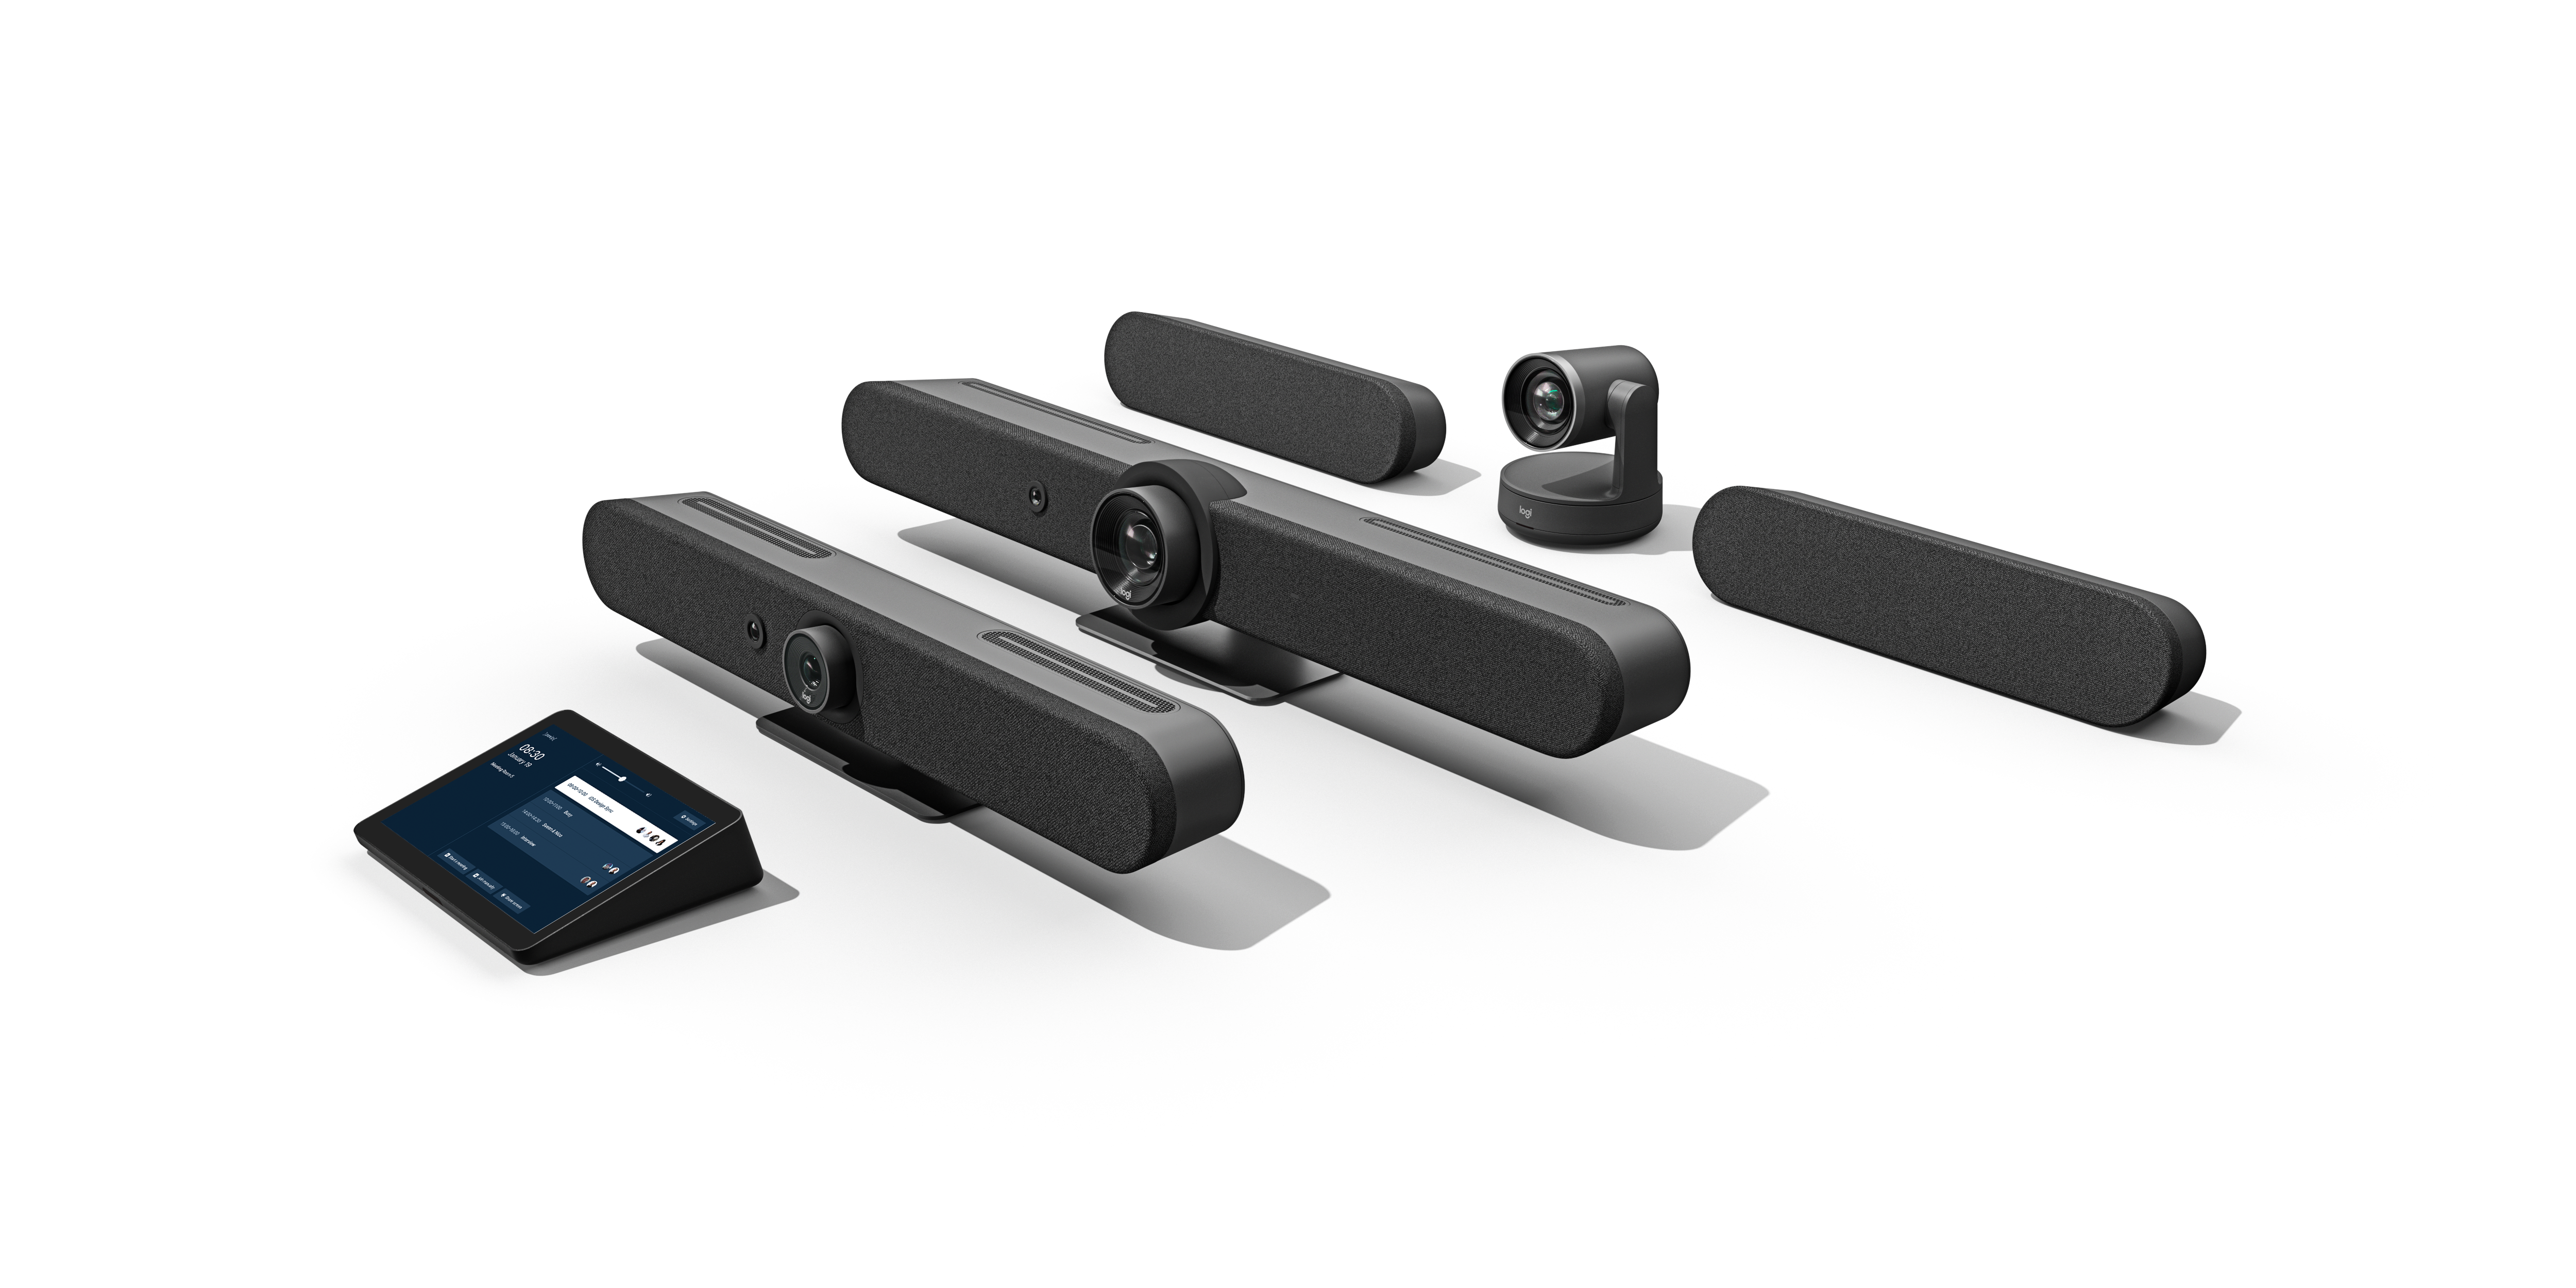 Logitech Rally family of devices